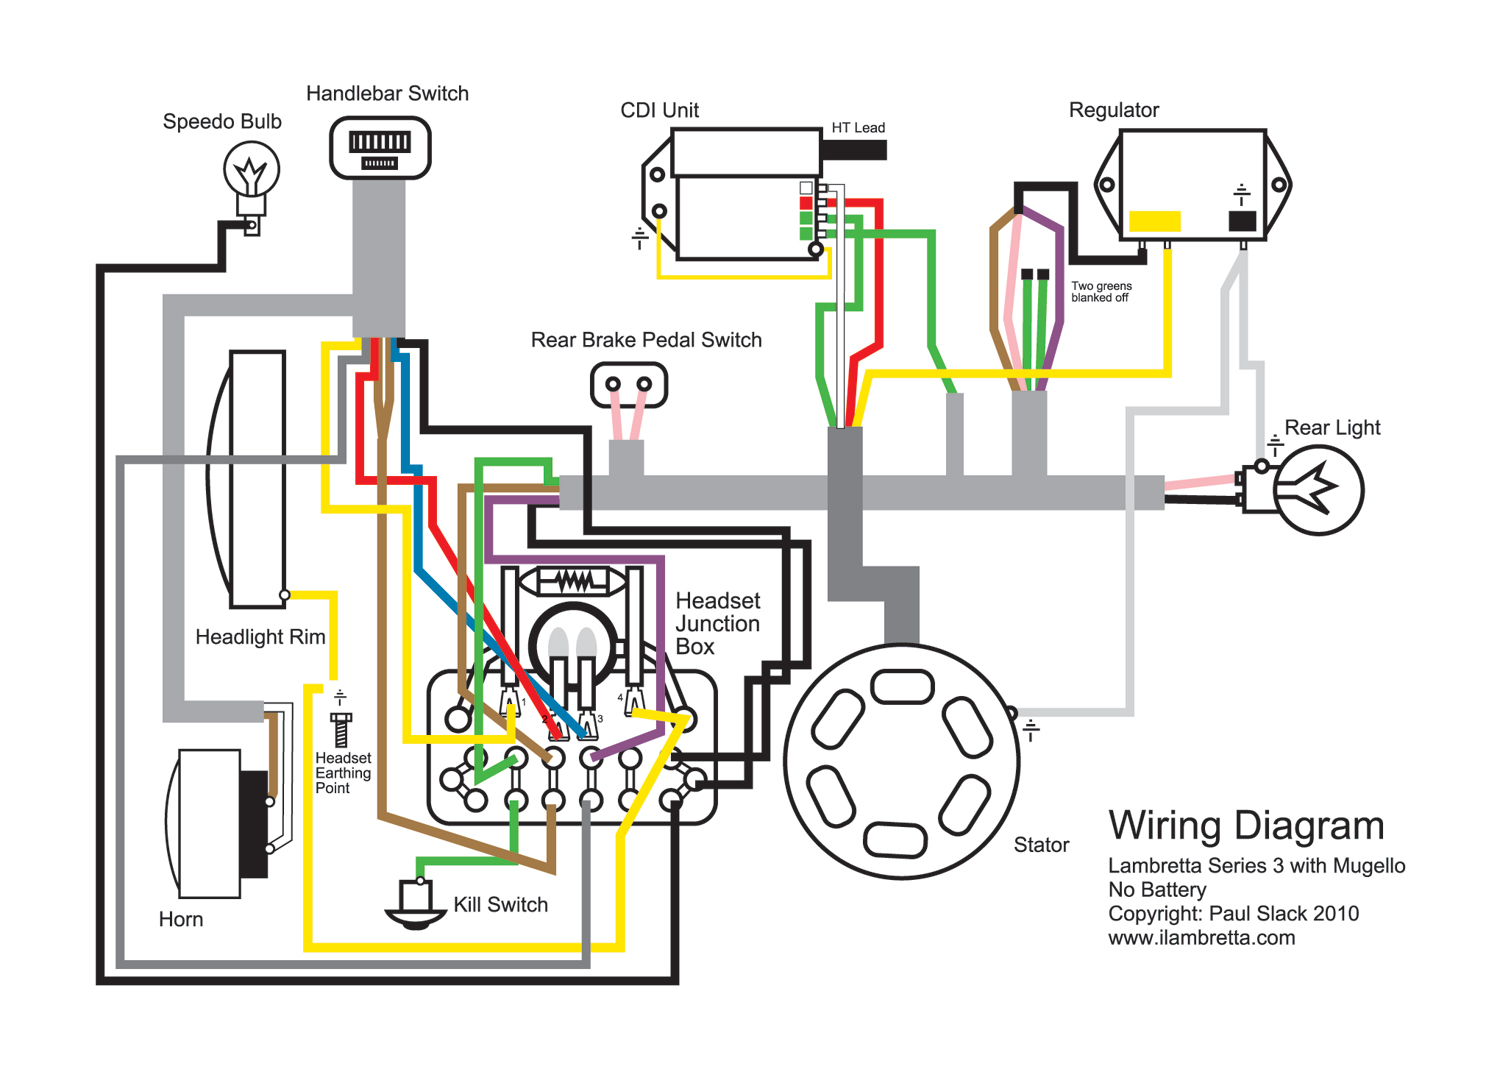 start with push button kill switch wiring schematic [ 1500 x 1072 Pixel ]